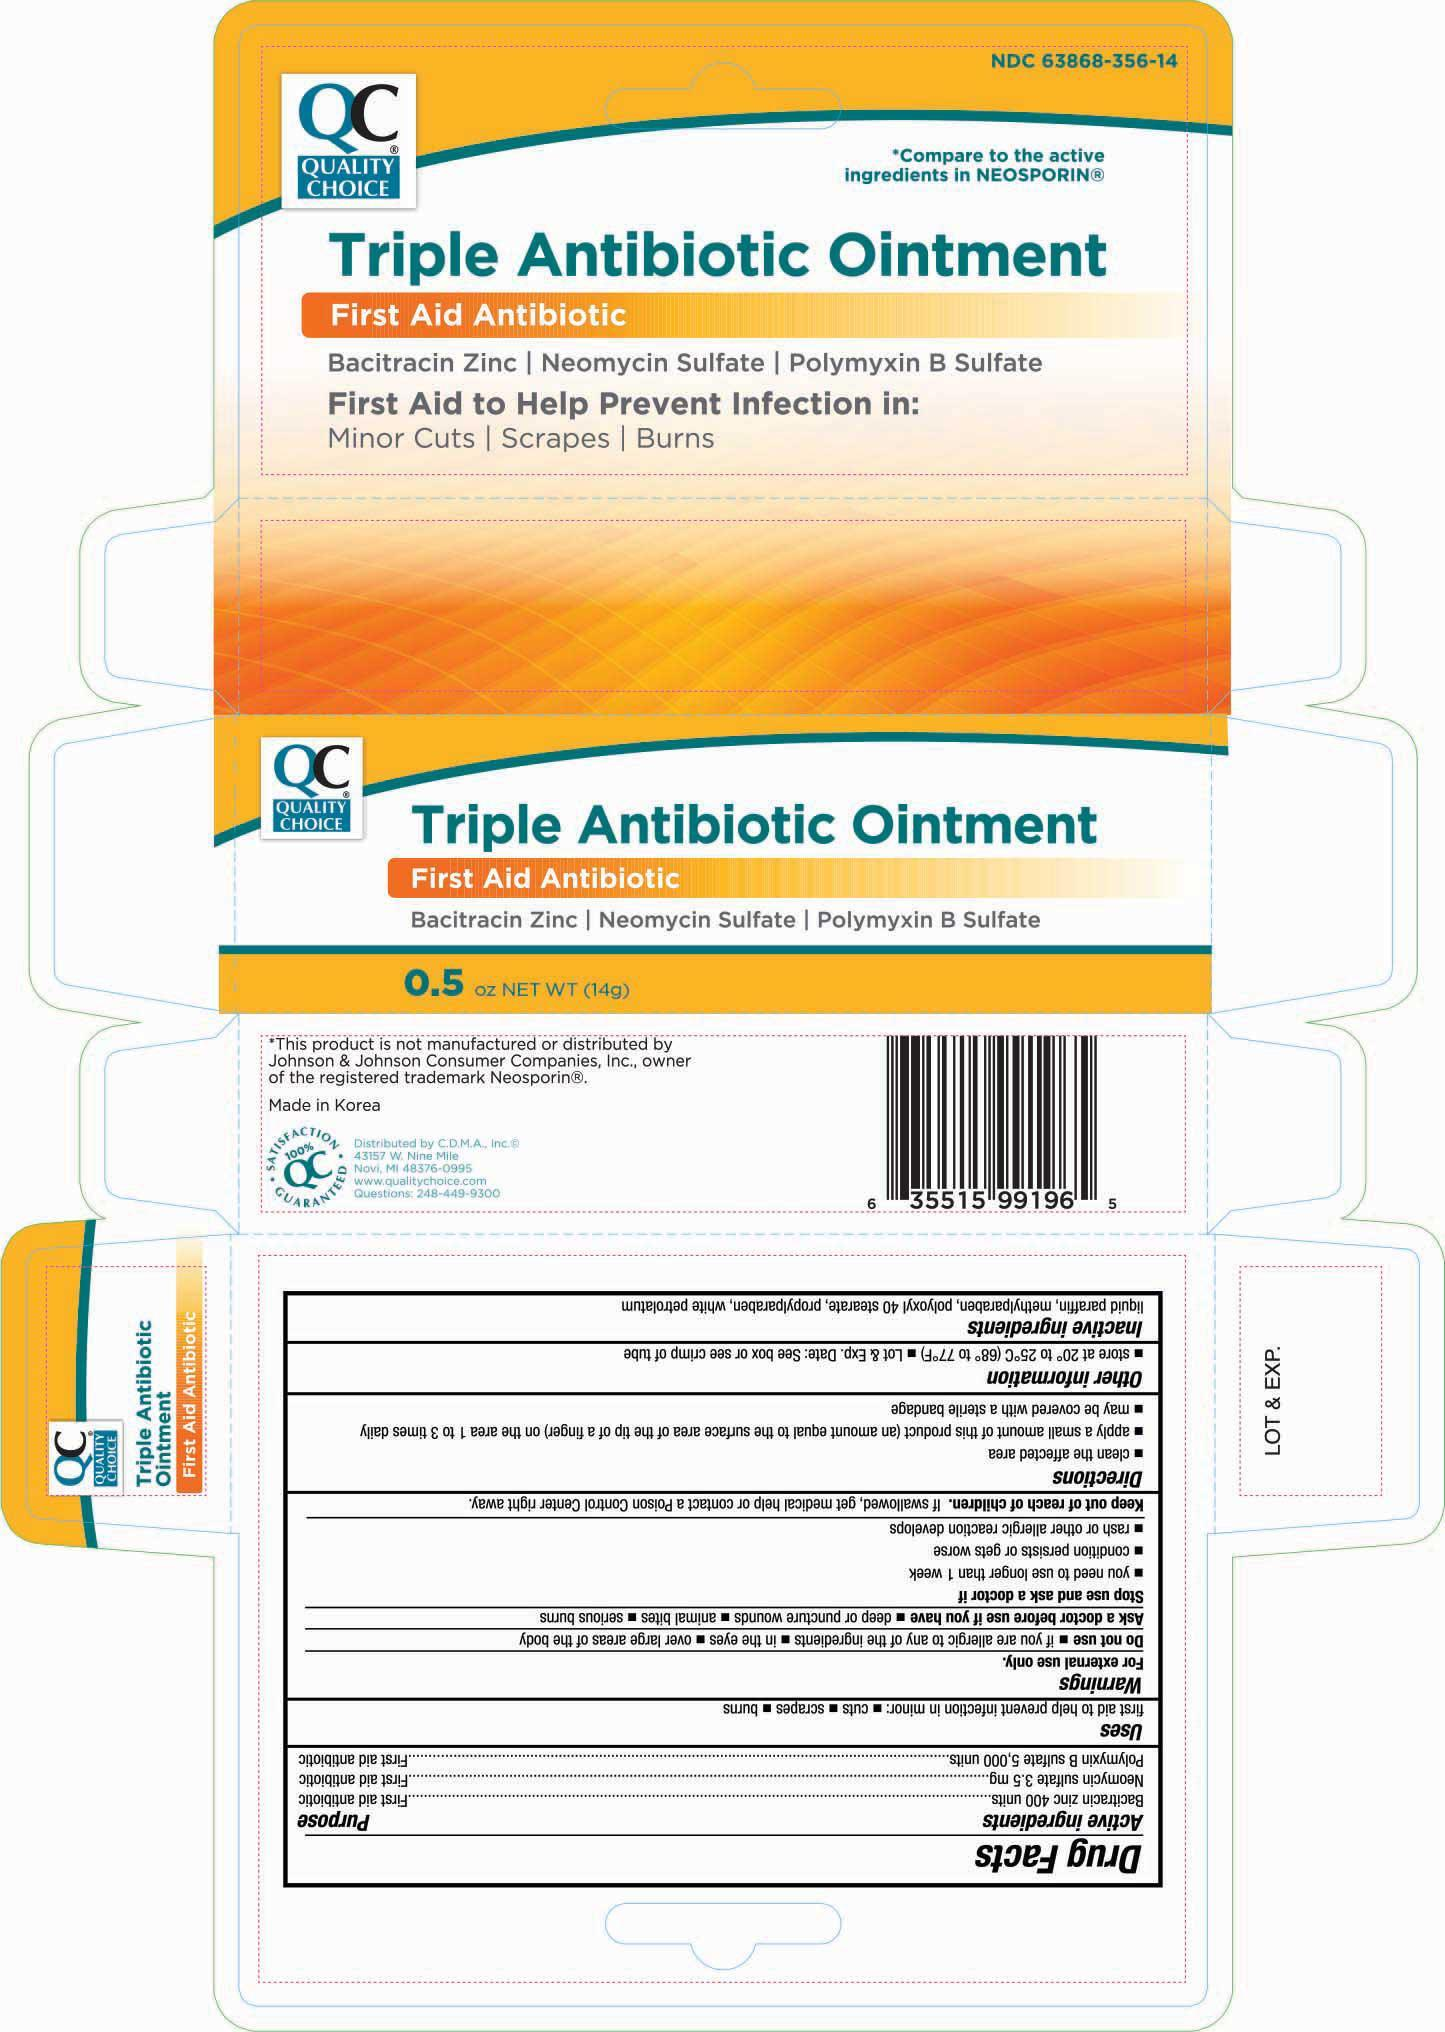 Quality Choice Triple Antibiotic (Bacitracin Zinc, Neomycin Sulfate, And Polymyxin B Sulfate) Ointment [Chain Drug Marketing Association Inc]